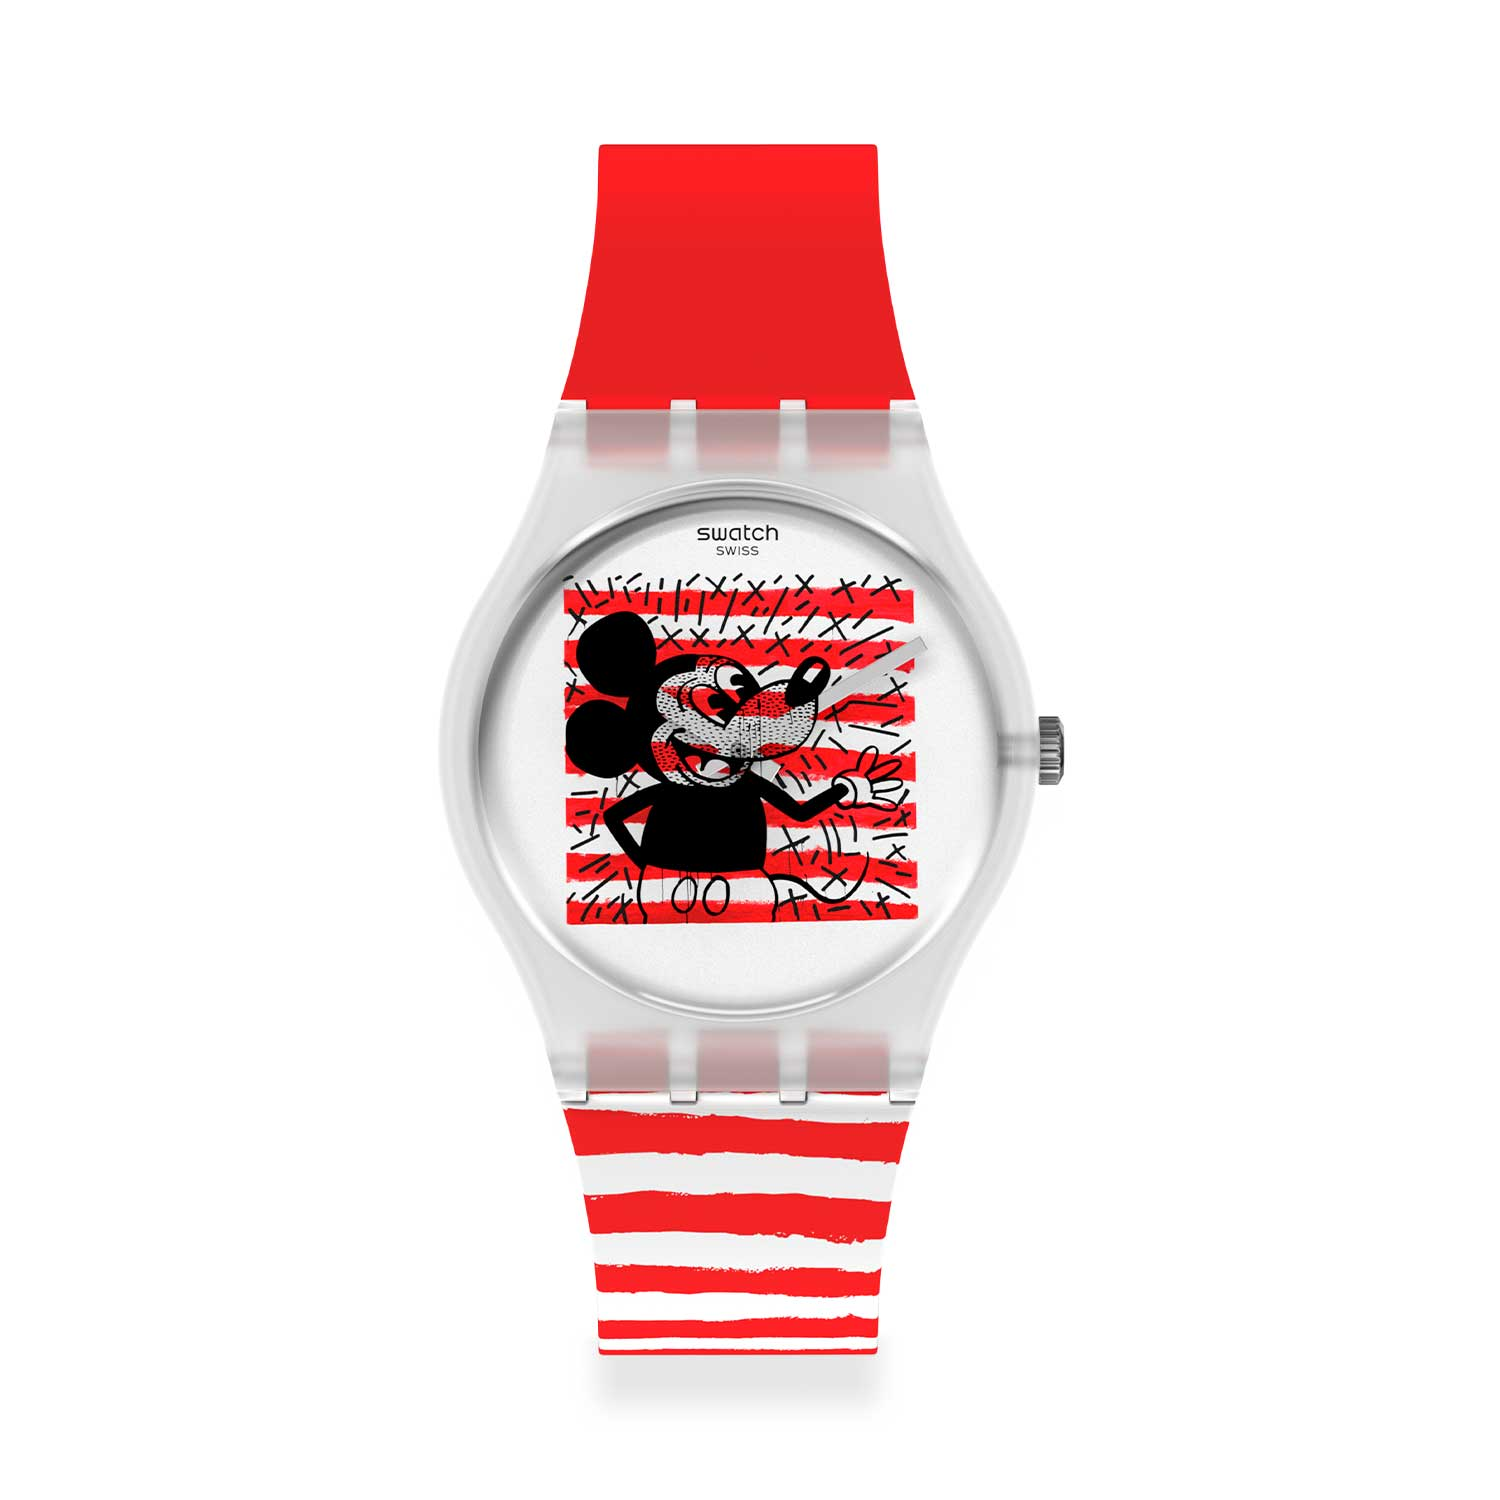 03 Swatch X Keith Haring %E2%80%93 The Mickey Watch - Swatch X Keith Haring - Đồng hồ Mickey siêu ấn tượng